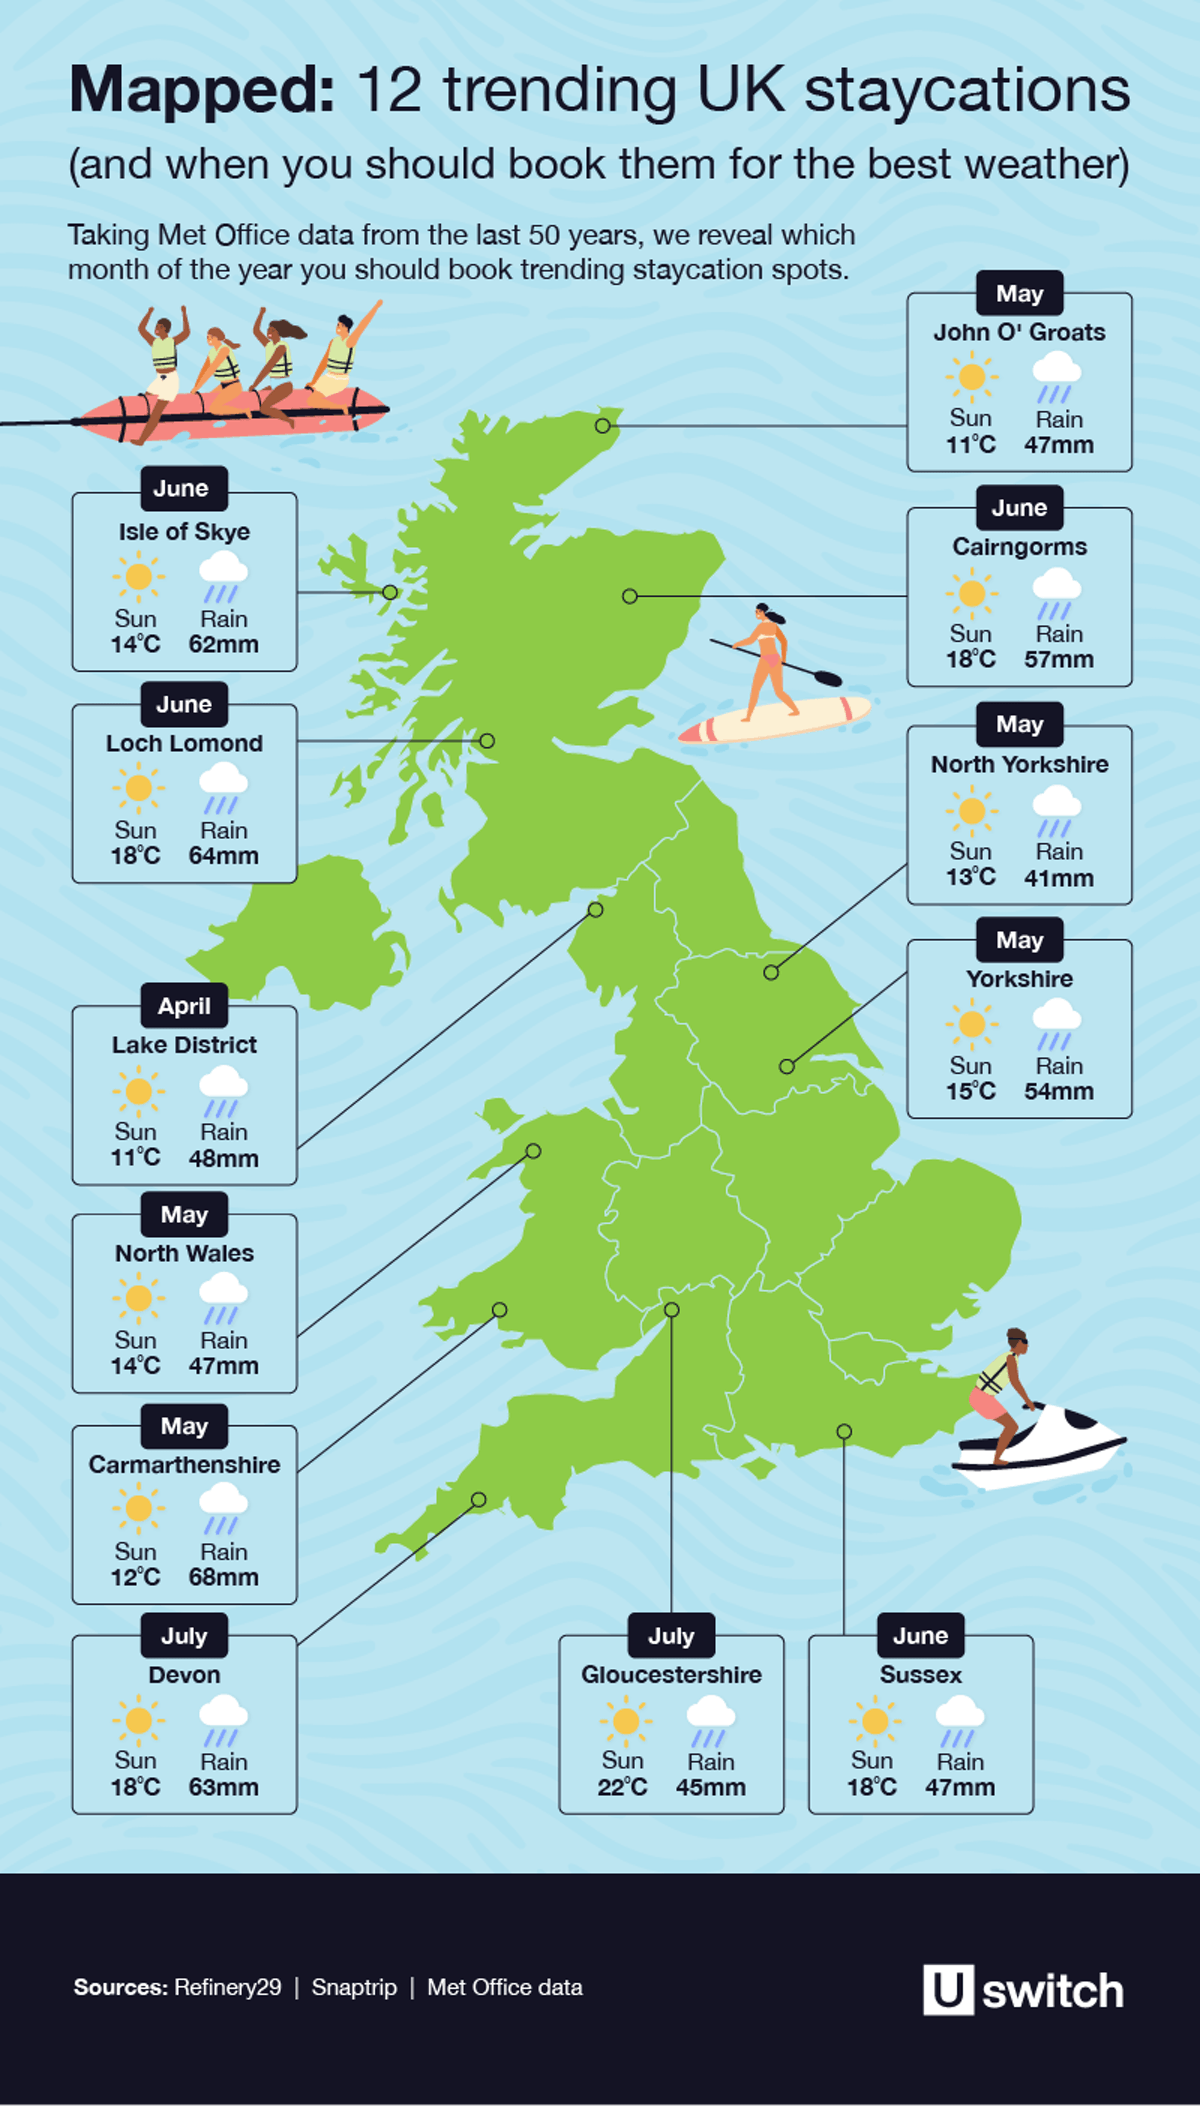 Mapped: 12 trending UK staycations (and when you should book them for the best weather).